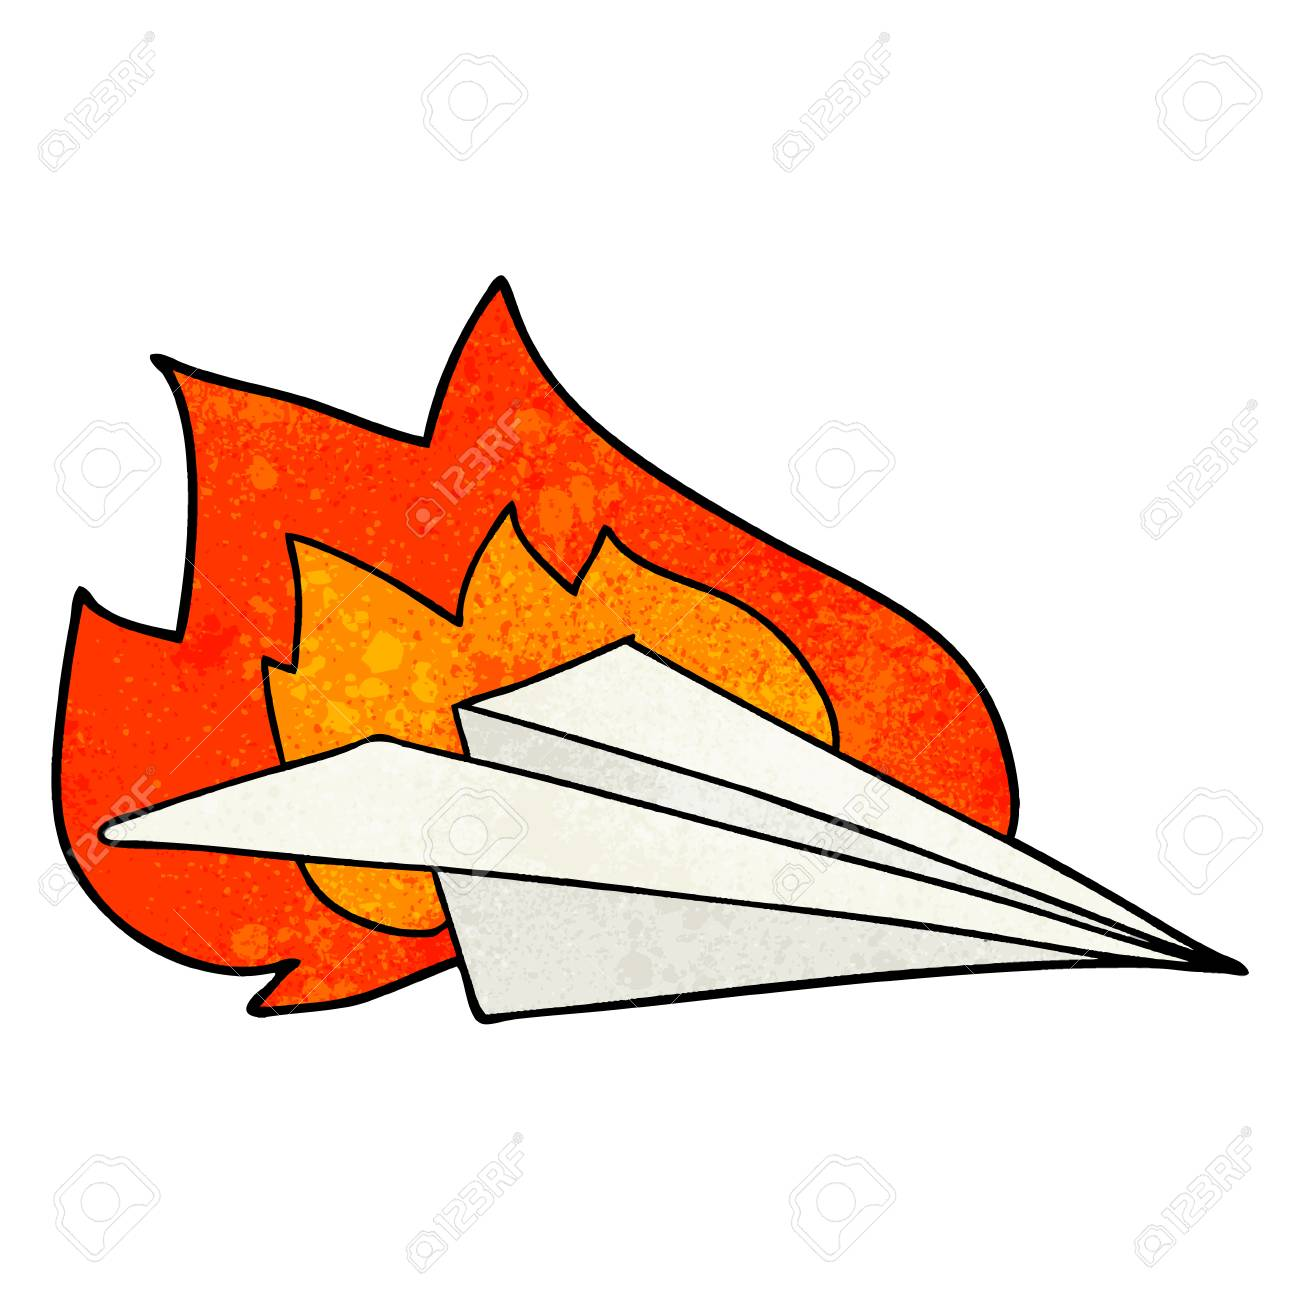 Cartoon Burning Paper Airplane Royalty Free Cliparts Vectors And